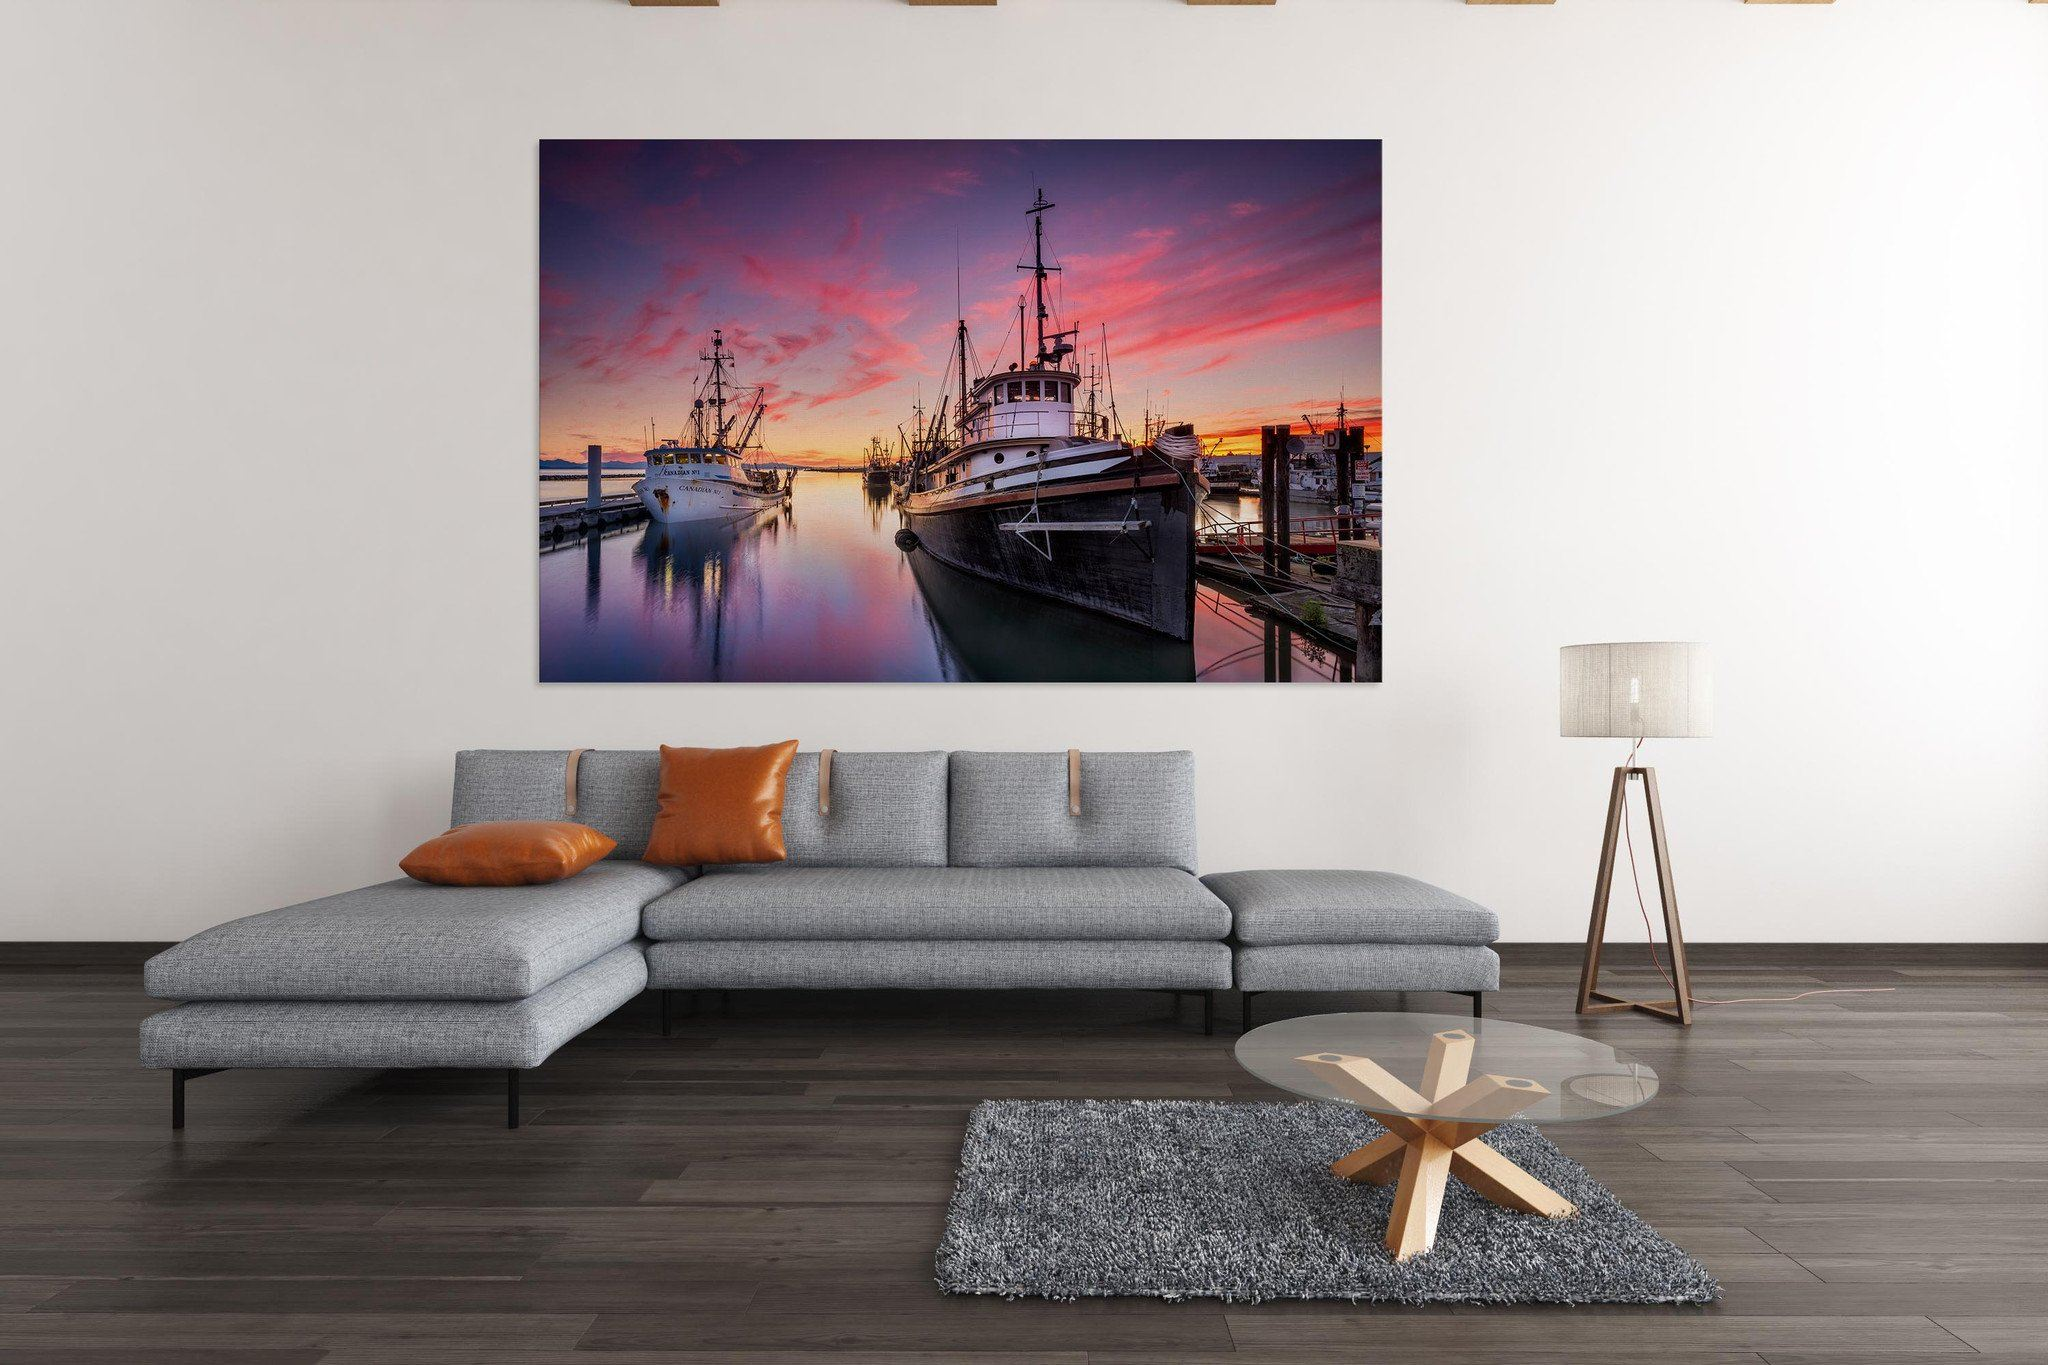 Get these 5 Instagram photos at home on your own wall